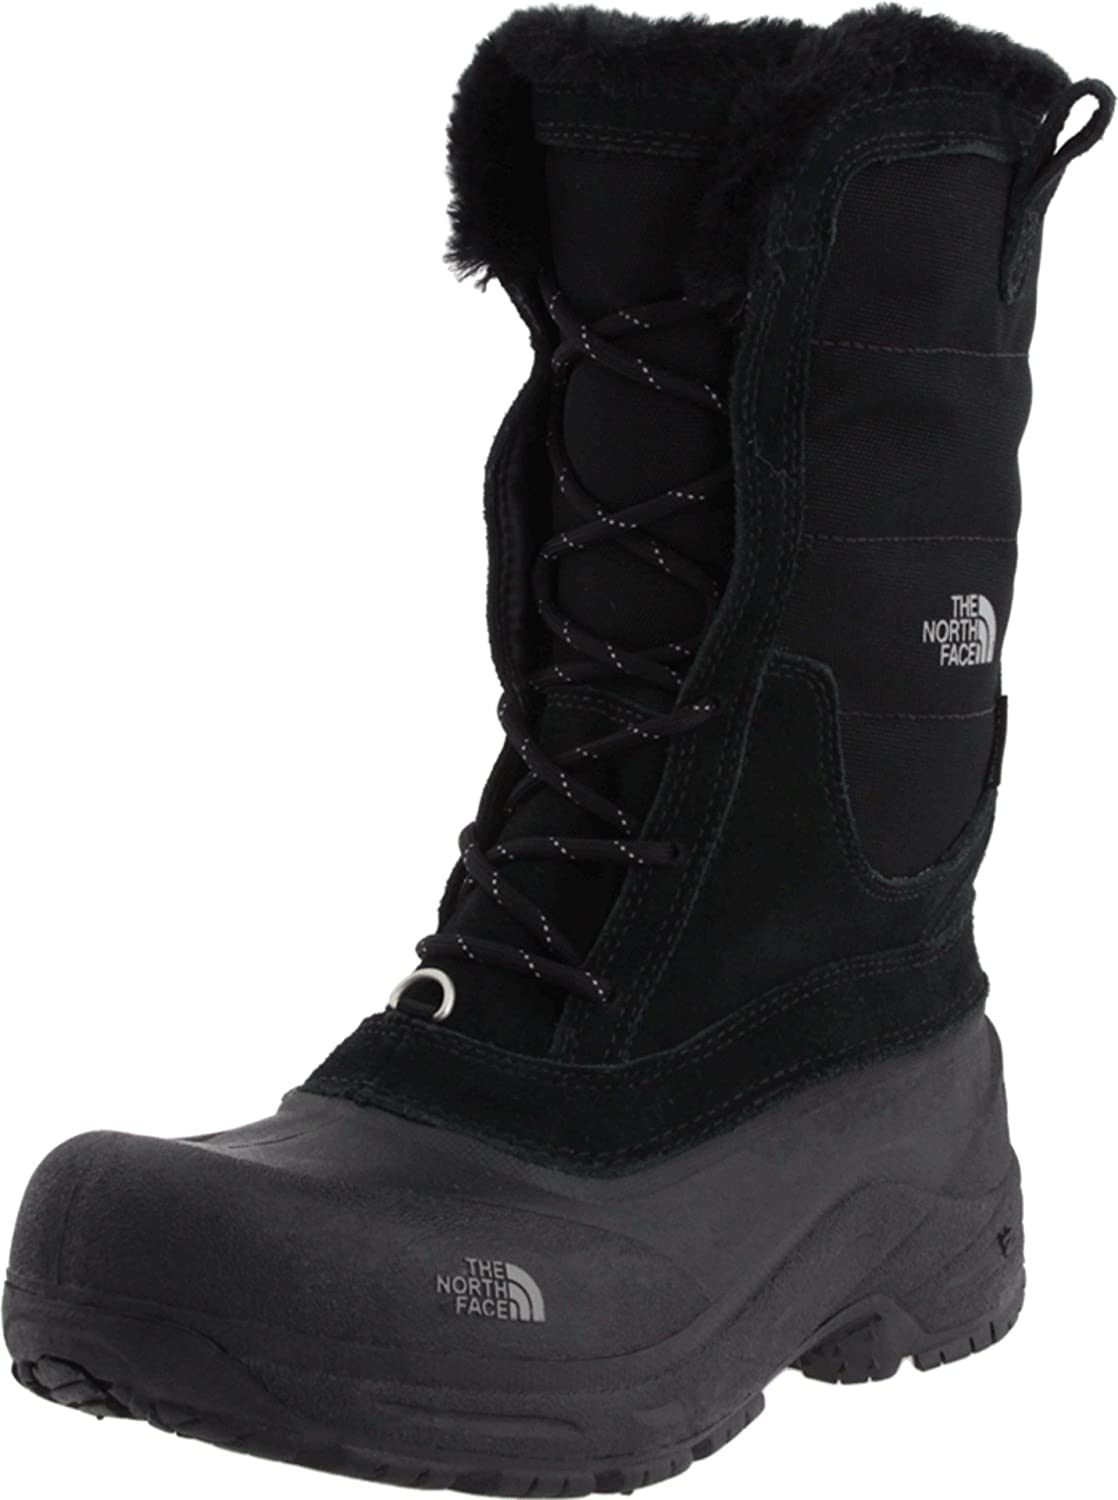 THE NORTH FACE Shellista Lace-Up Insulated Boot (Toddler), Black Foil Grey,10 M US